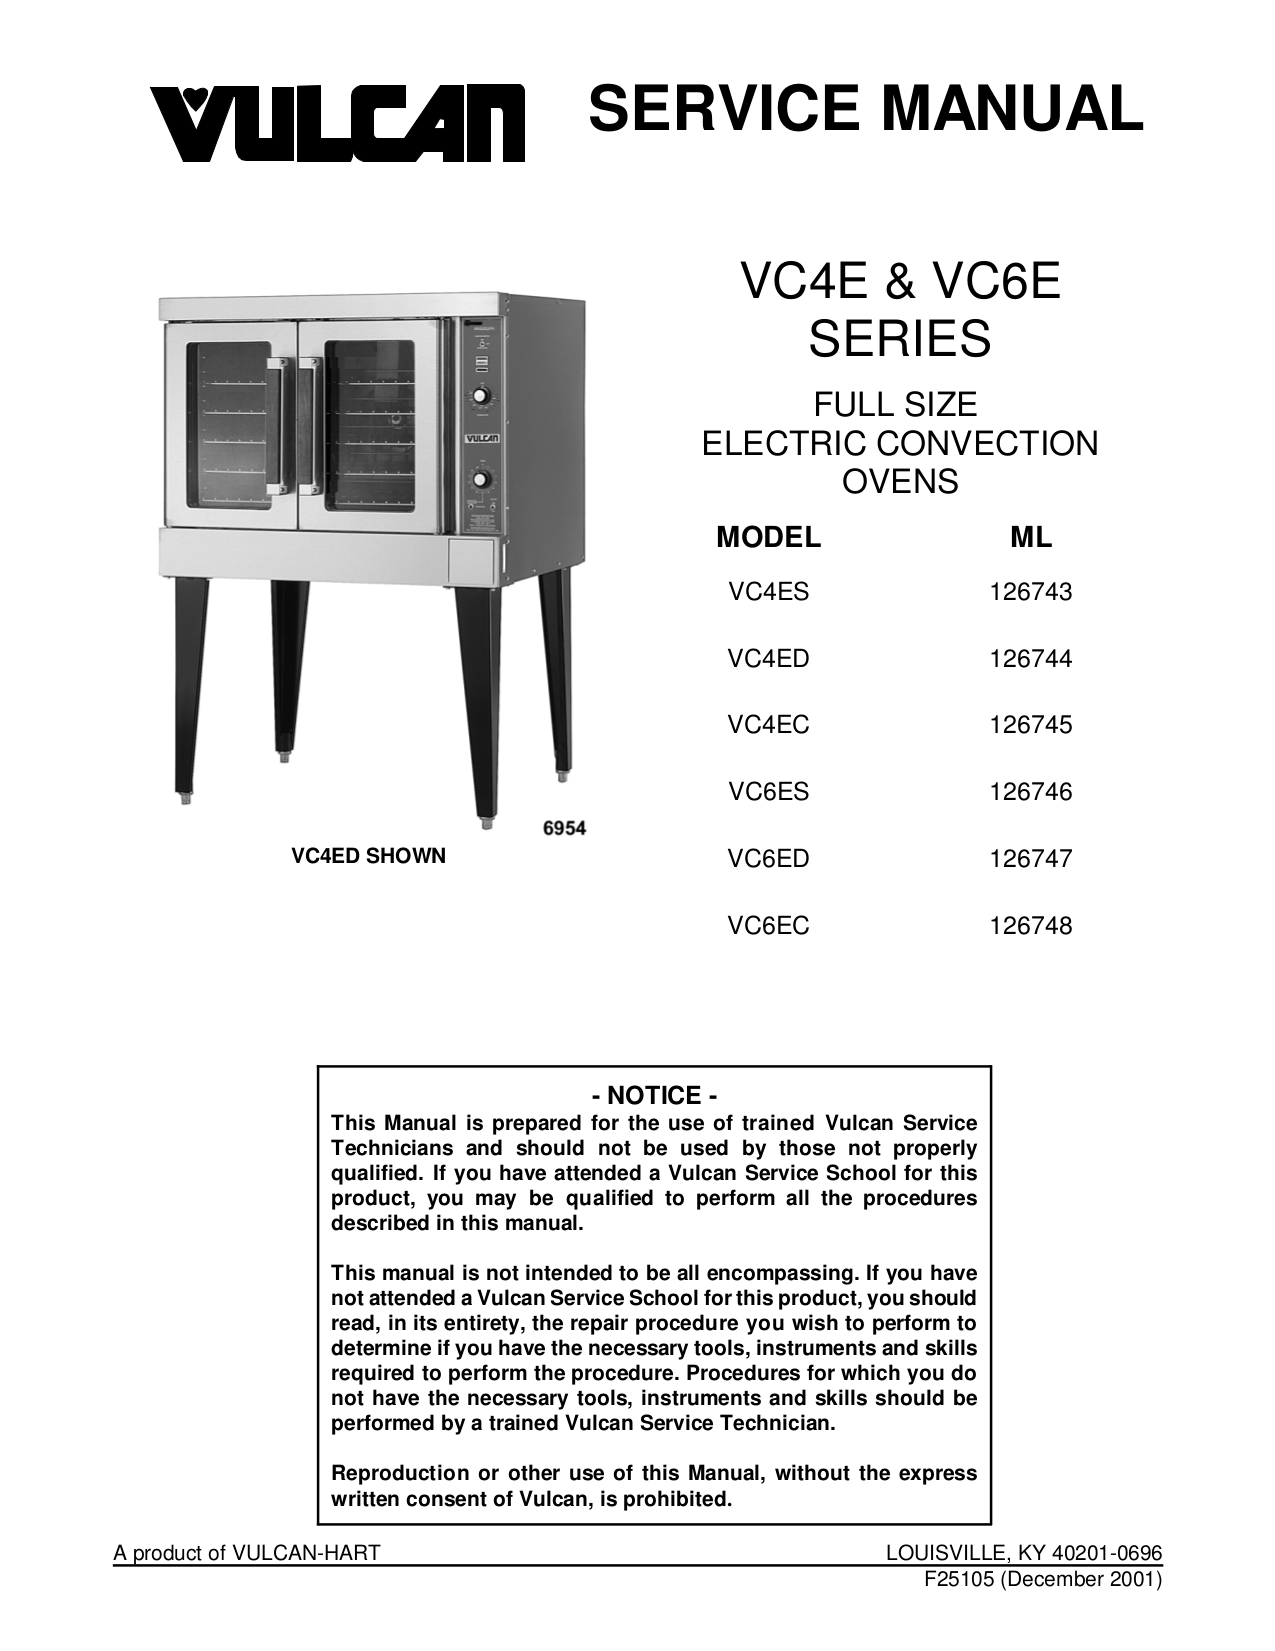 pdf for Vulcan Oven VC44ED manual